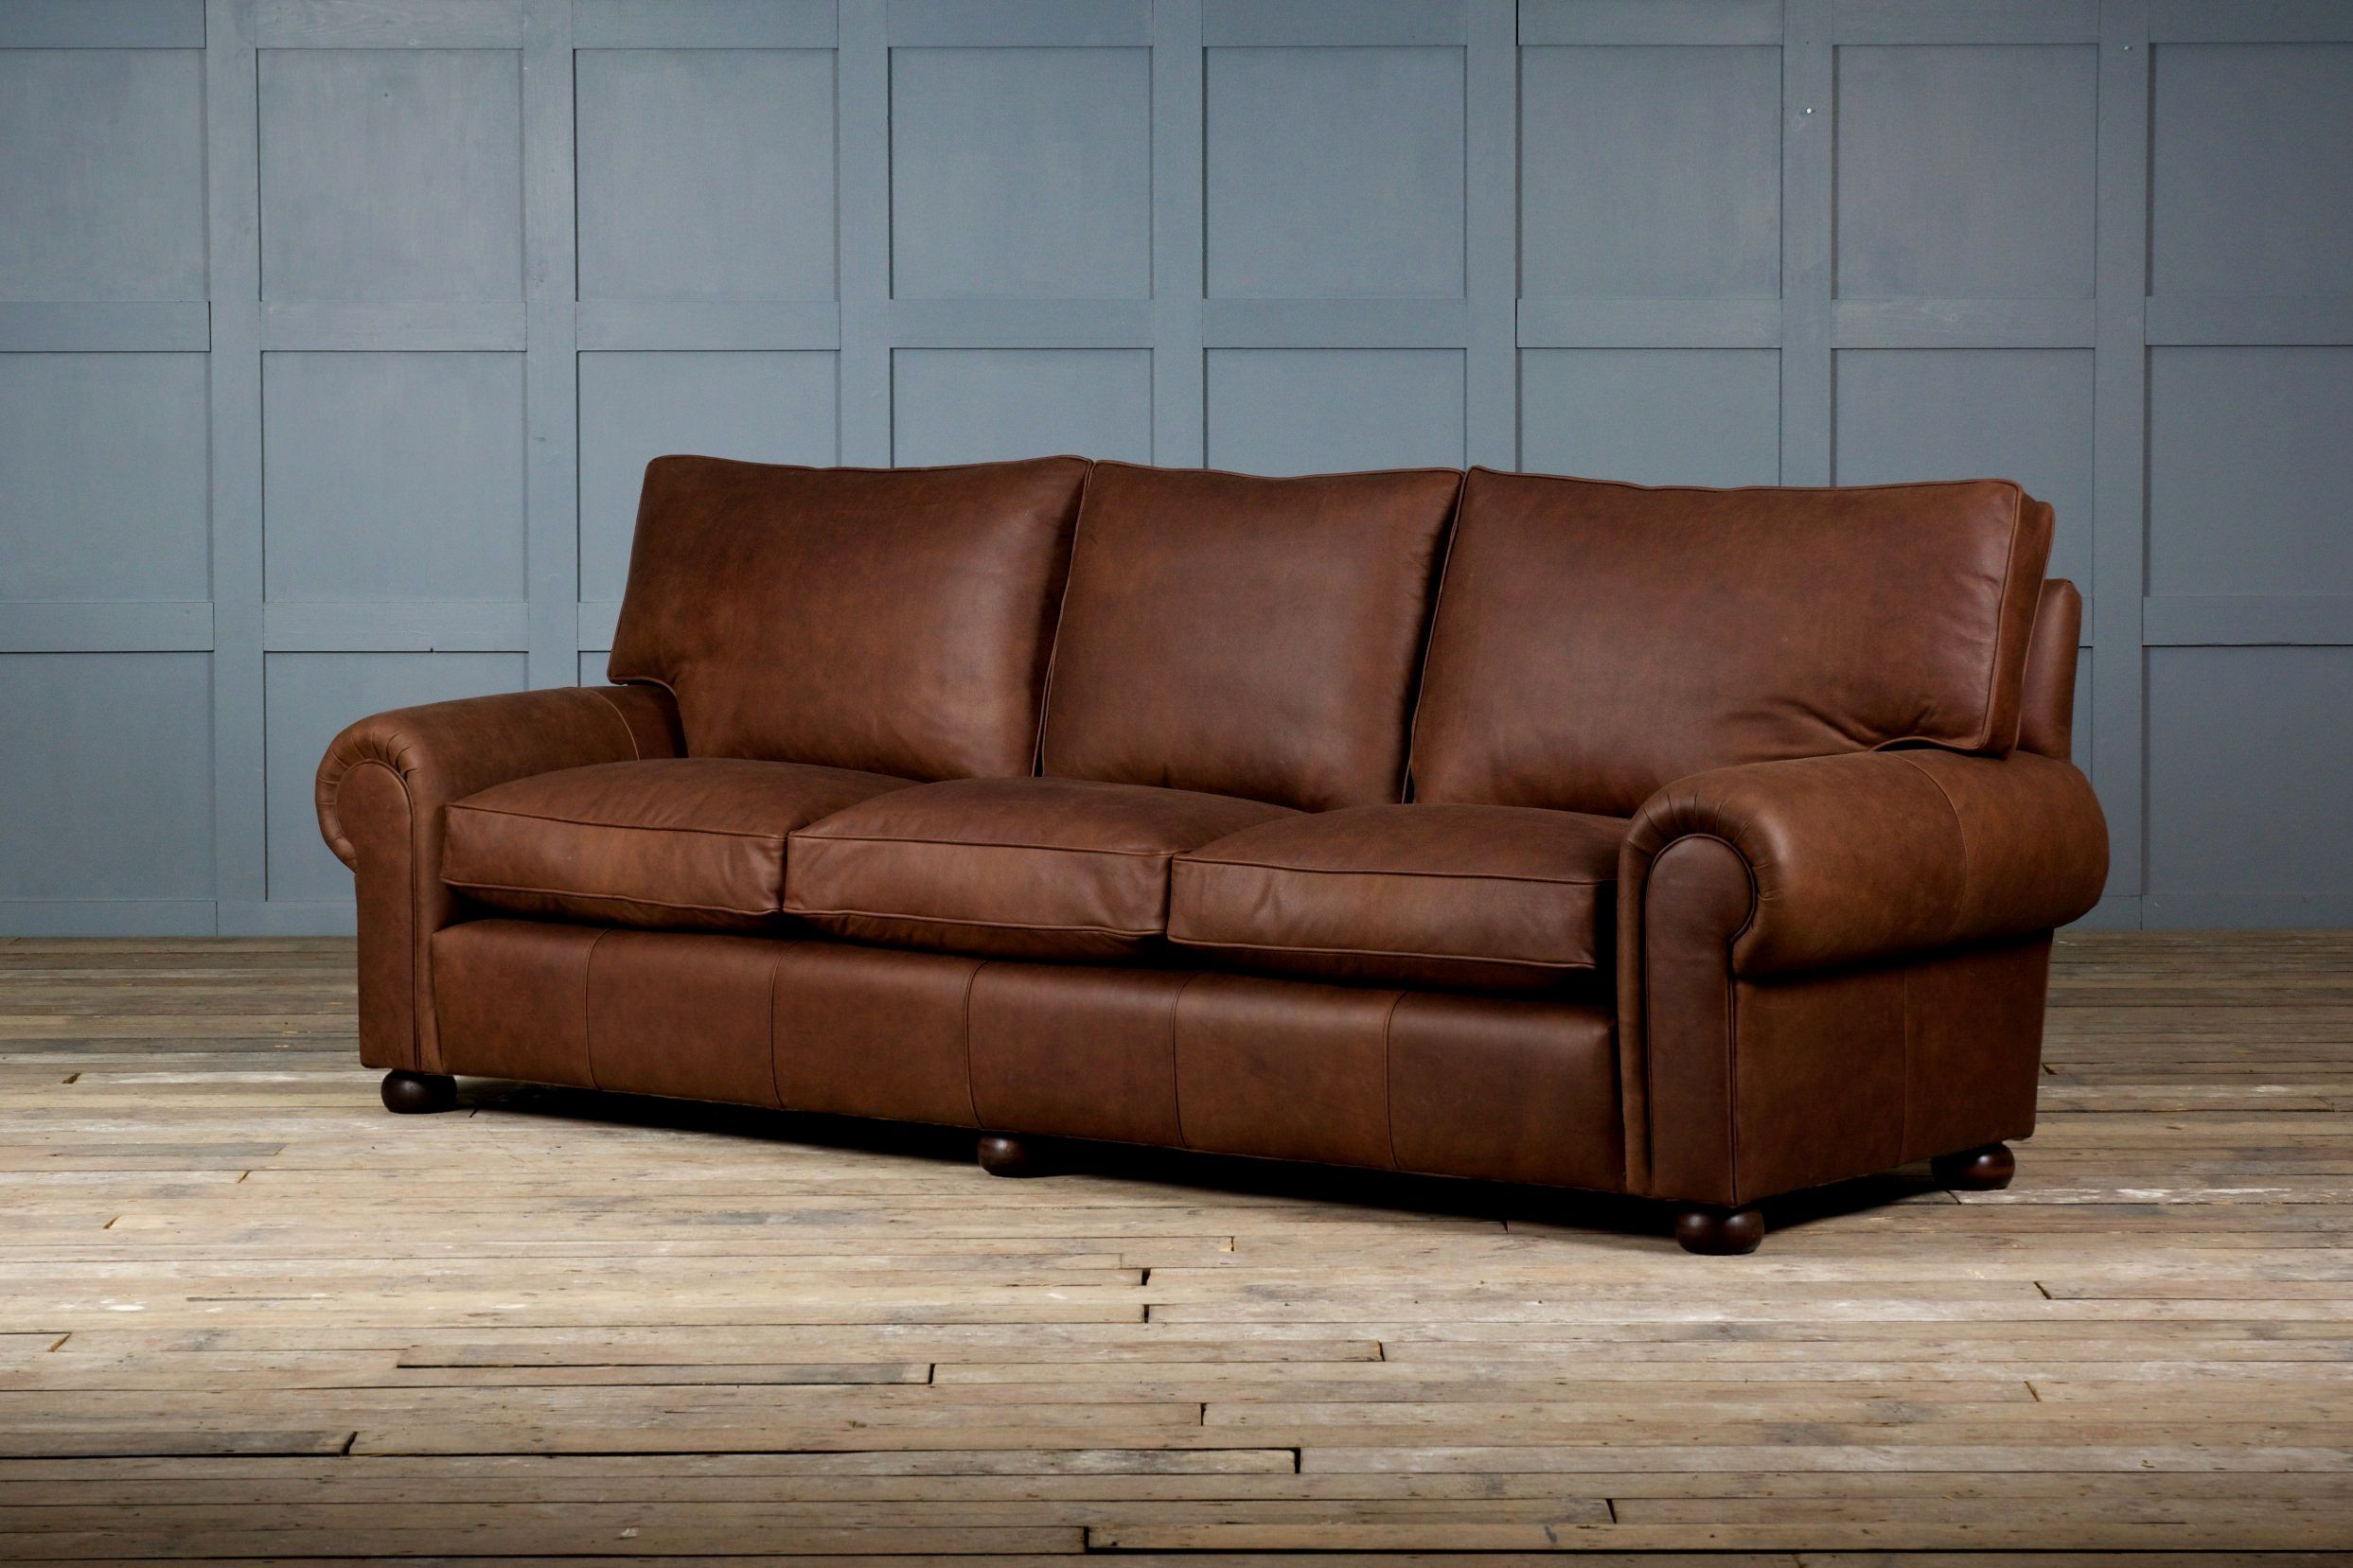 Fresh Brown Leather Sleeper Sofa Photos Light Full Grain Corner Decor With Cushions As